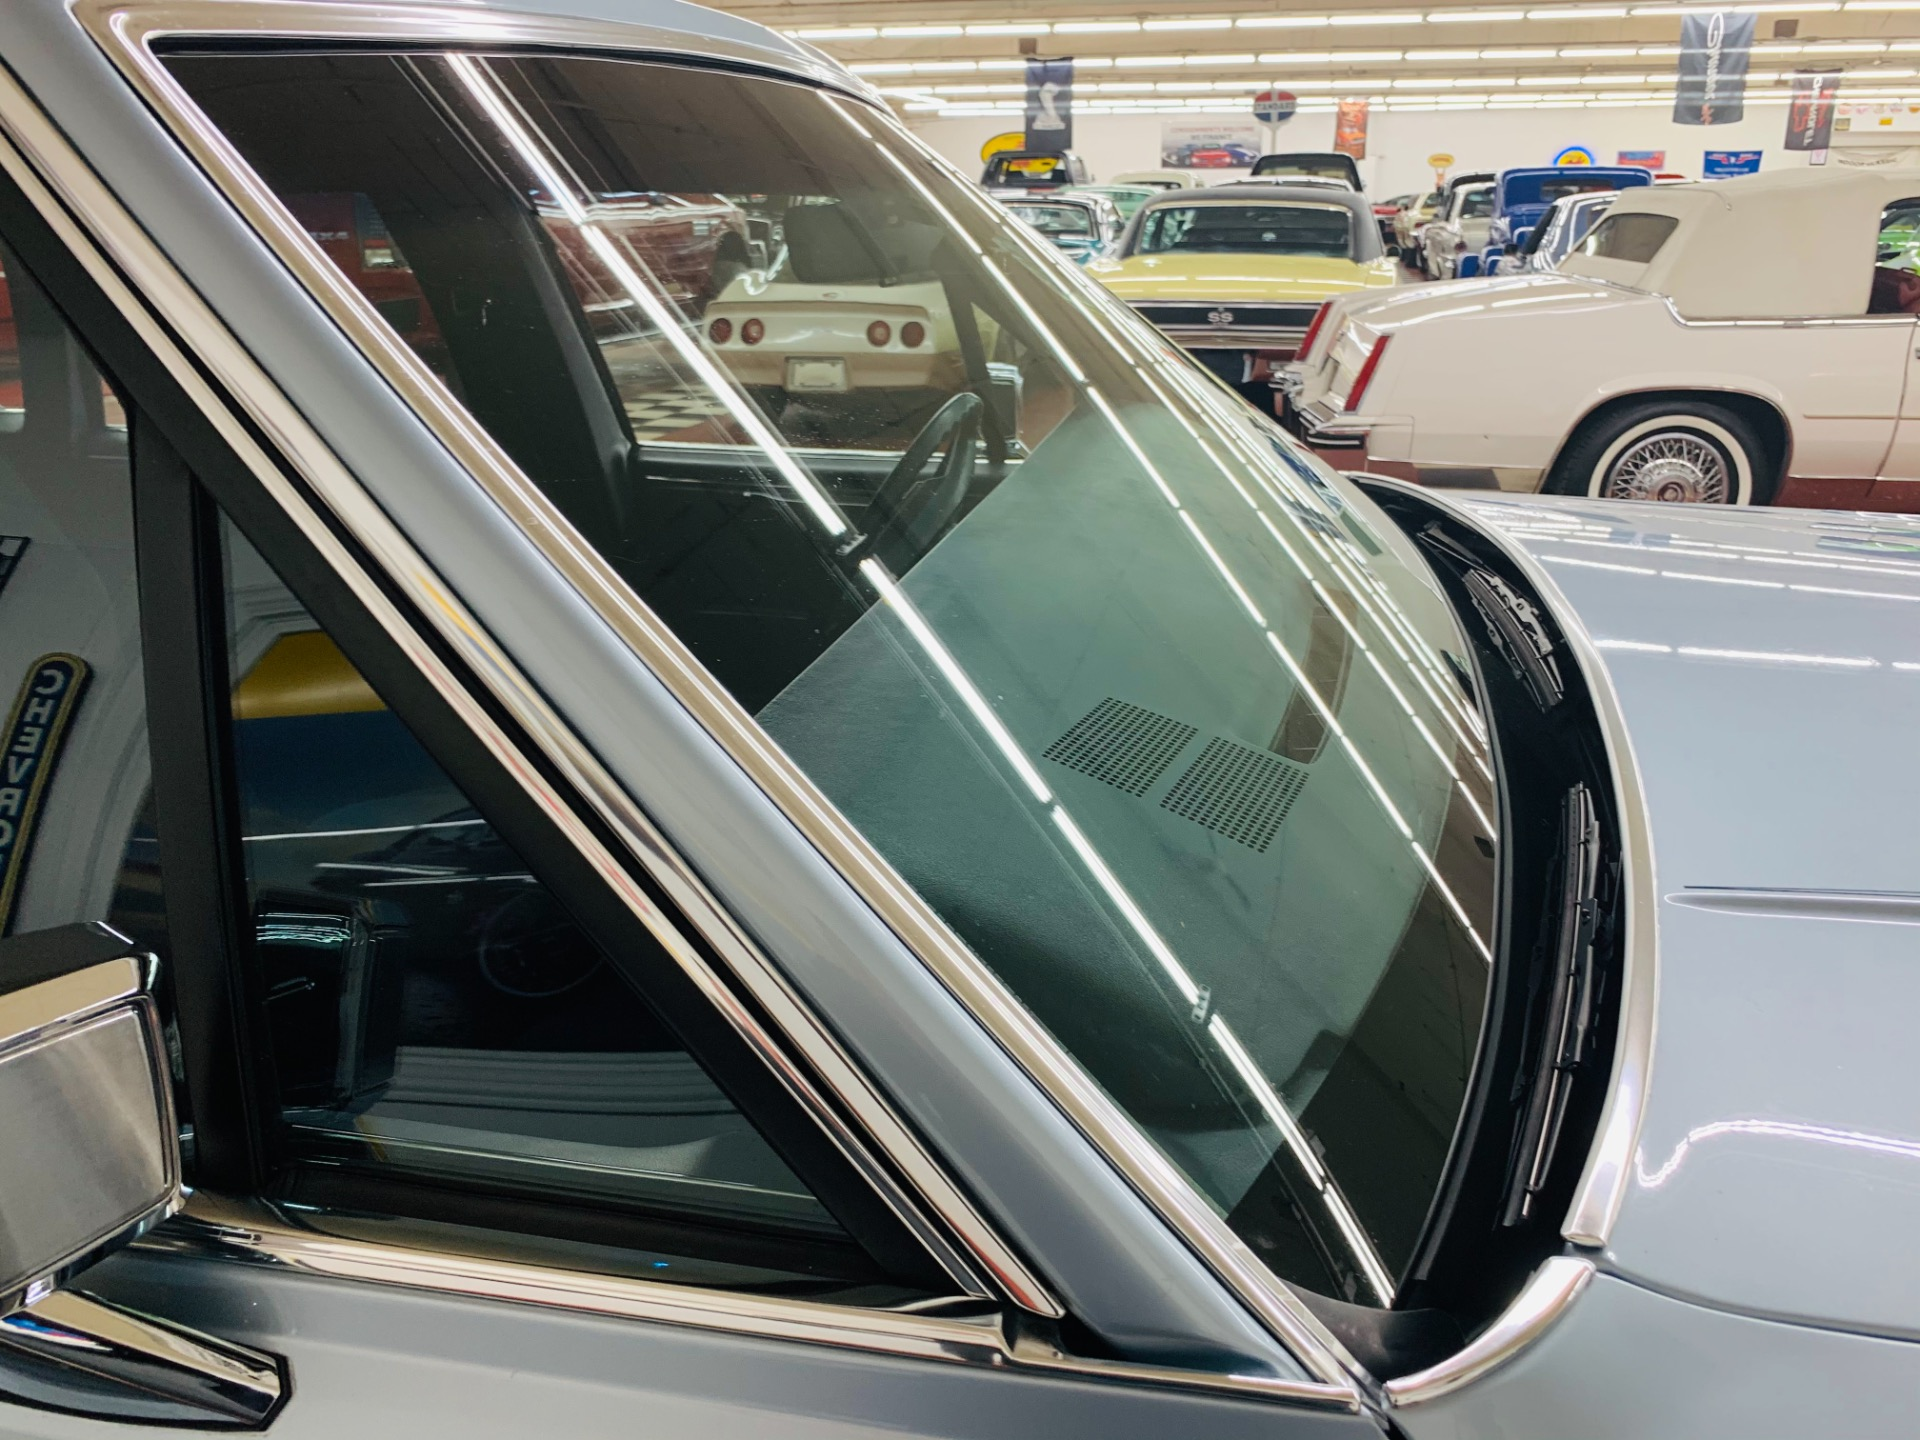 Used 1988 Lincoln Town Car -SUPER LOW MILES - LIKE NEW CONDITION - | Mundelein, IL